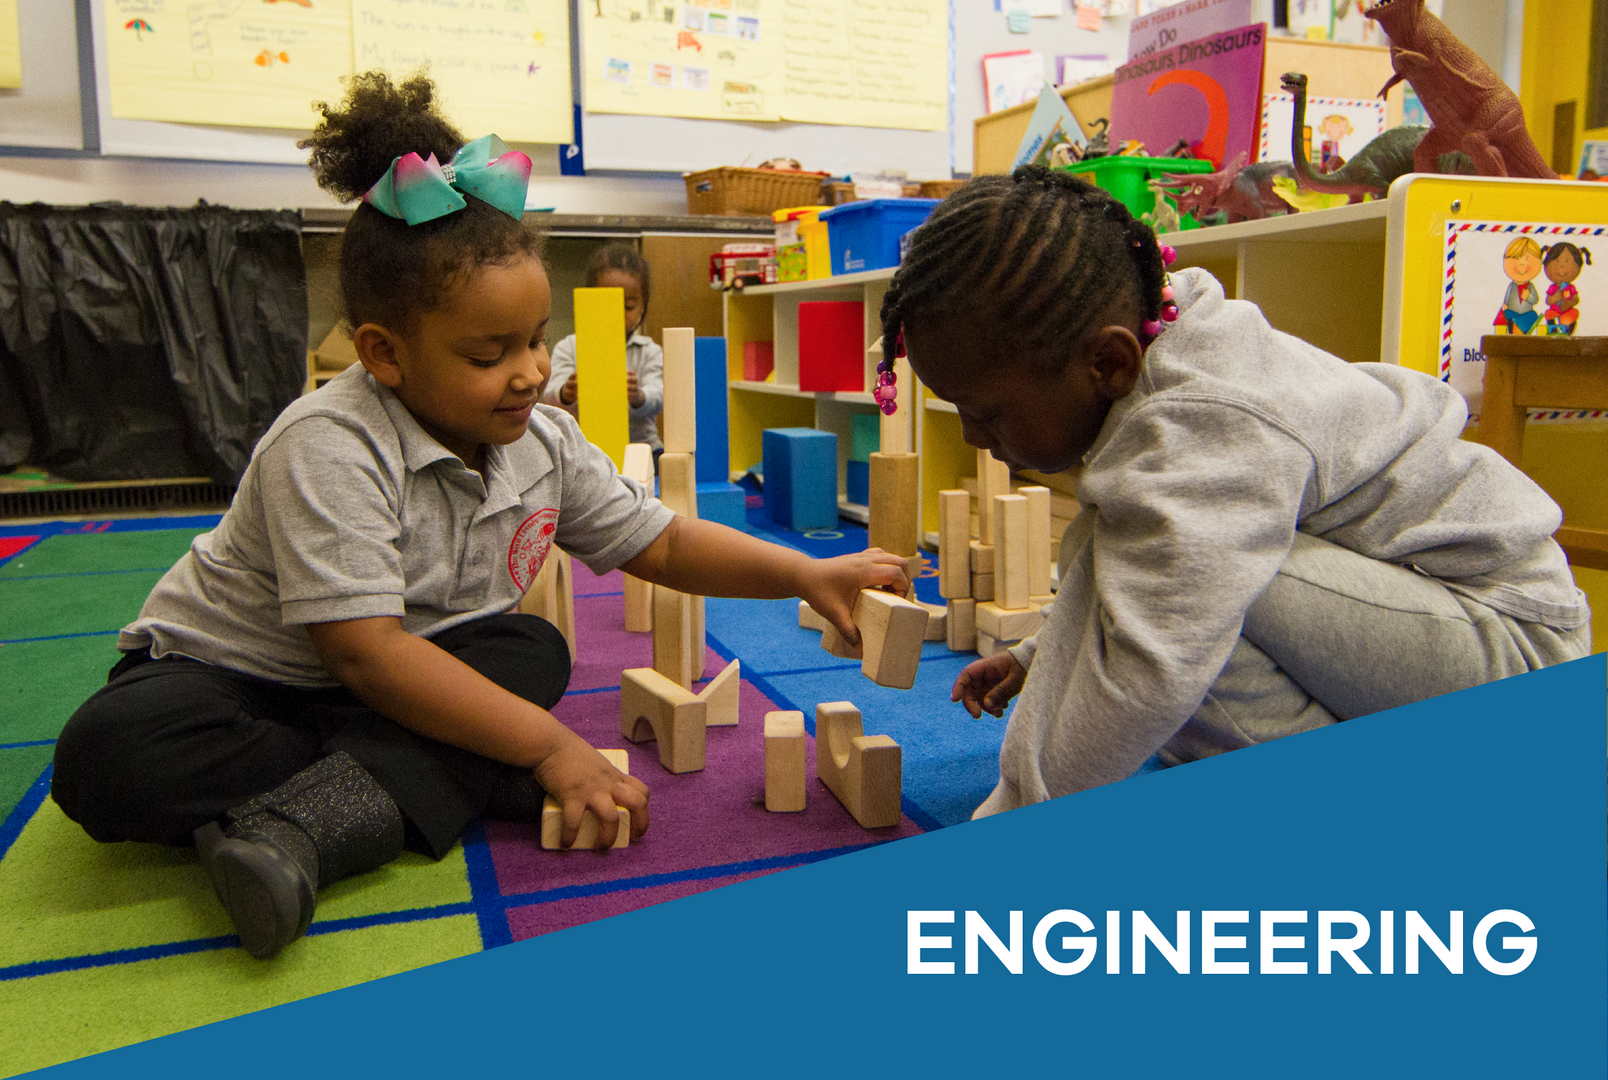 Engineering: little ones playing with blocks